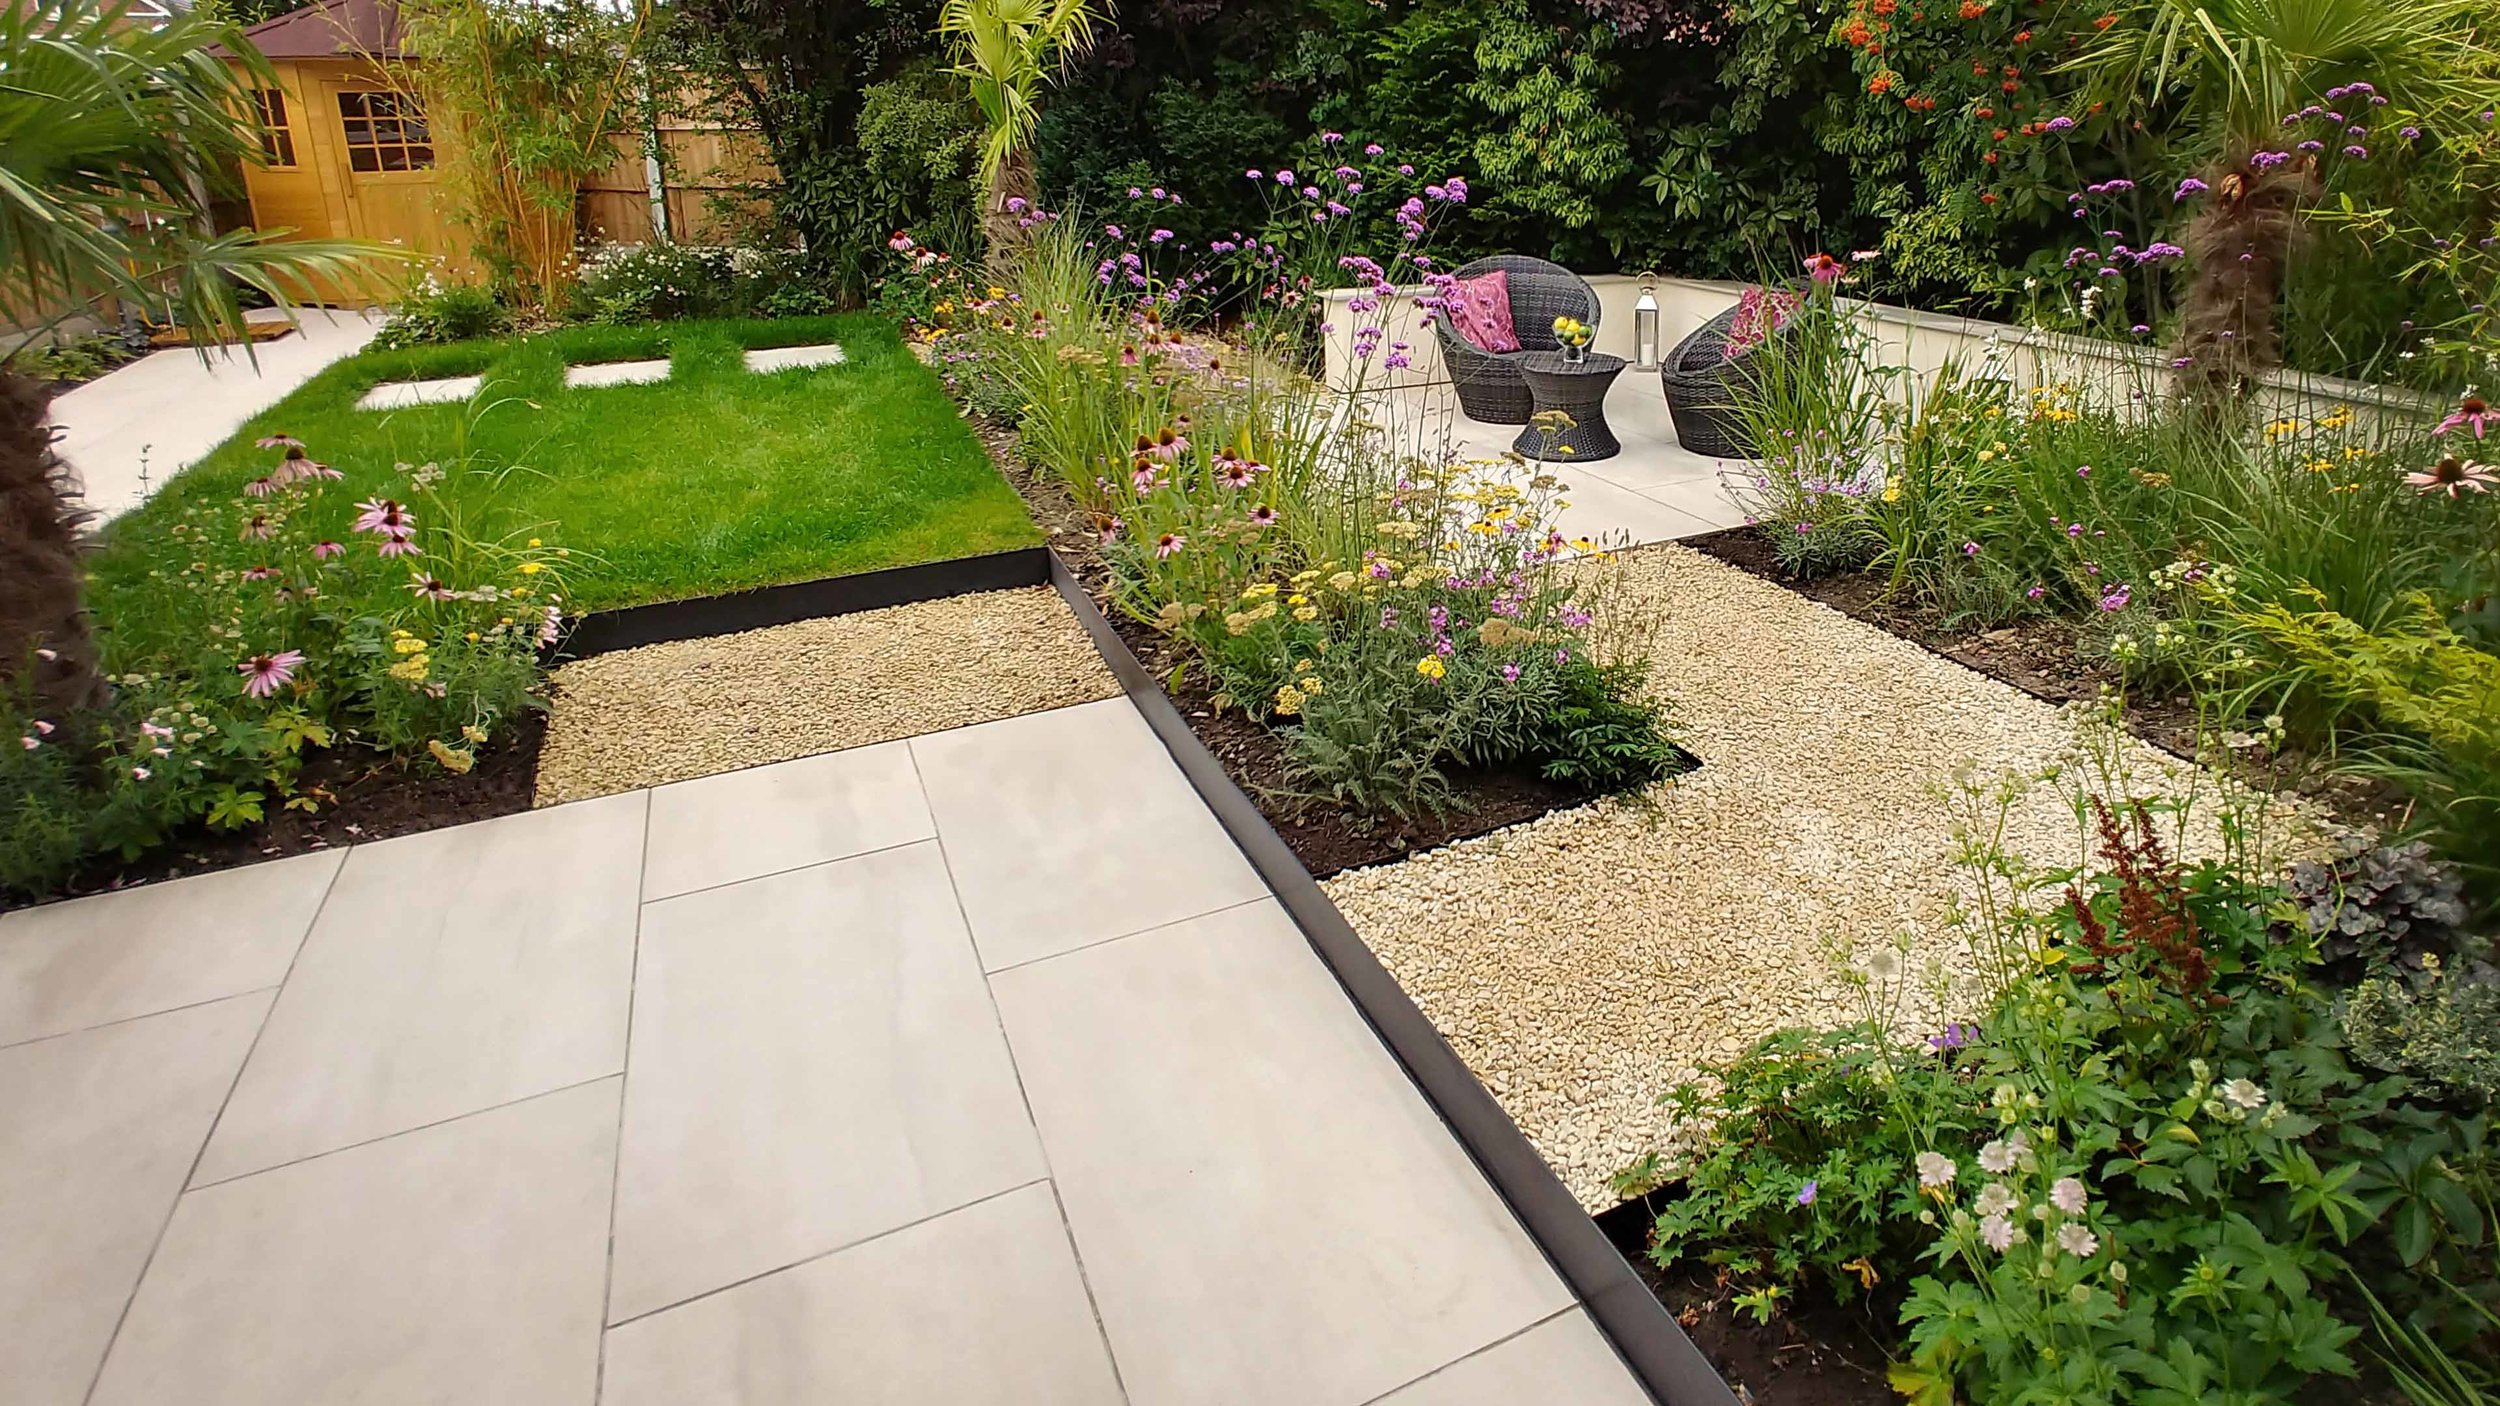 Garden Design Cheshire: Prairie Planting And Porcelain Patio: